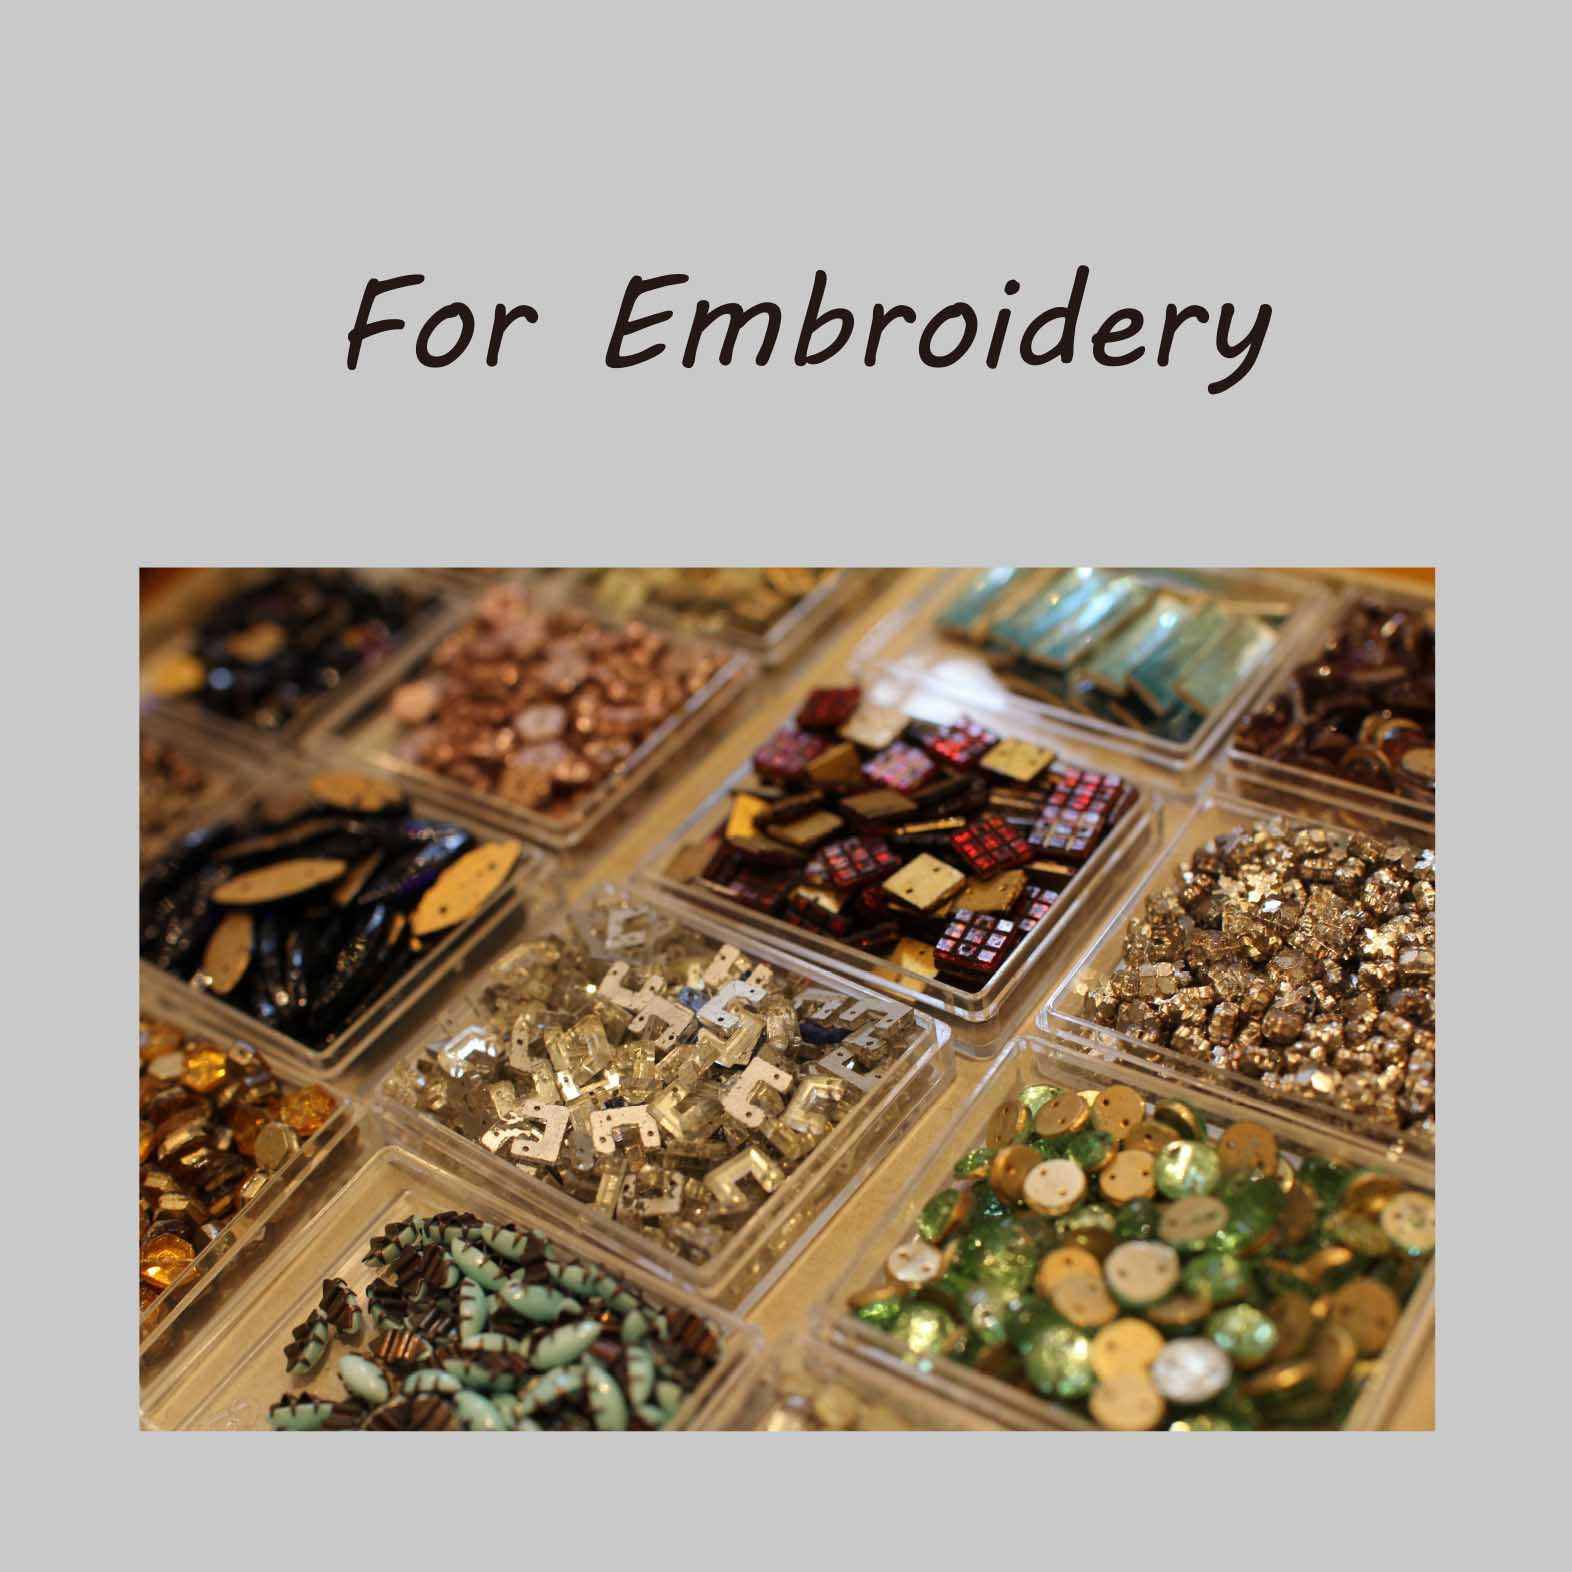 For Embroidery